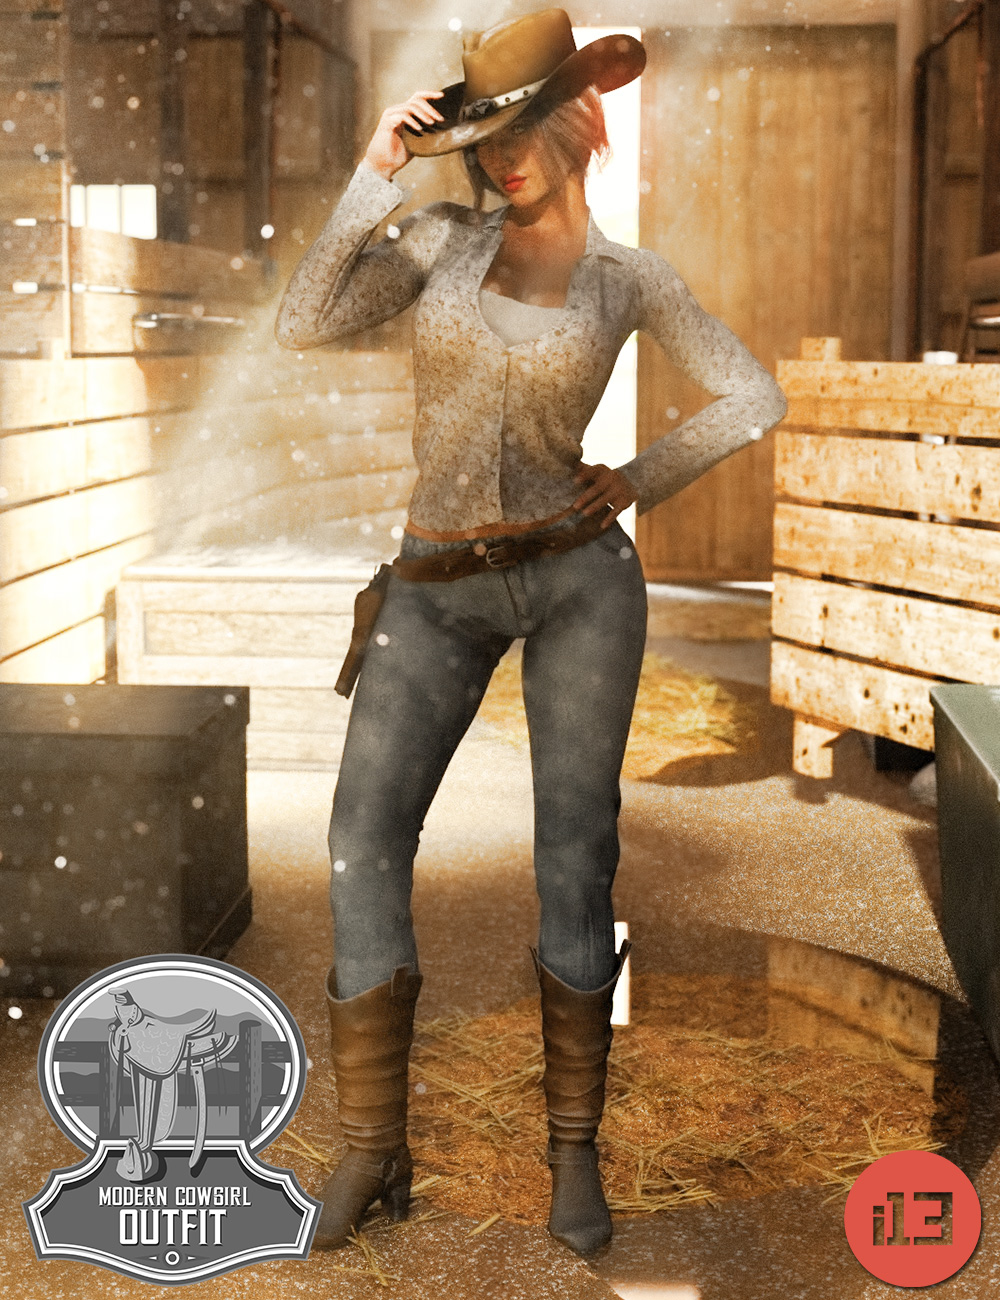 i13 Modern Cowgirl Outfit for the Genesis 3 Female(s) by: ironman13, 3D Models by Daz 3D